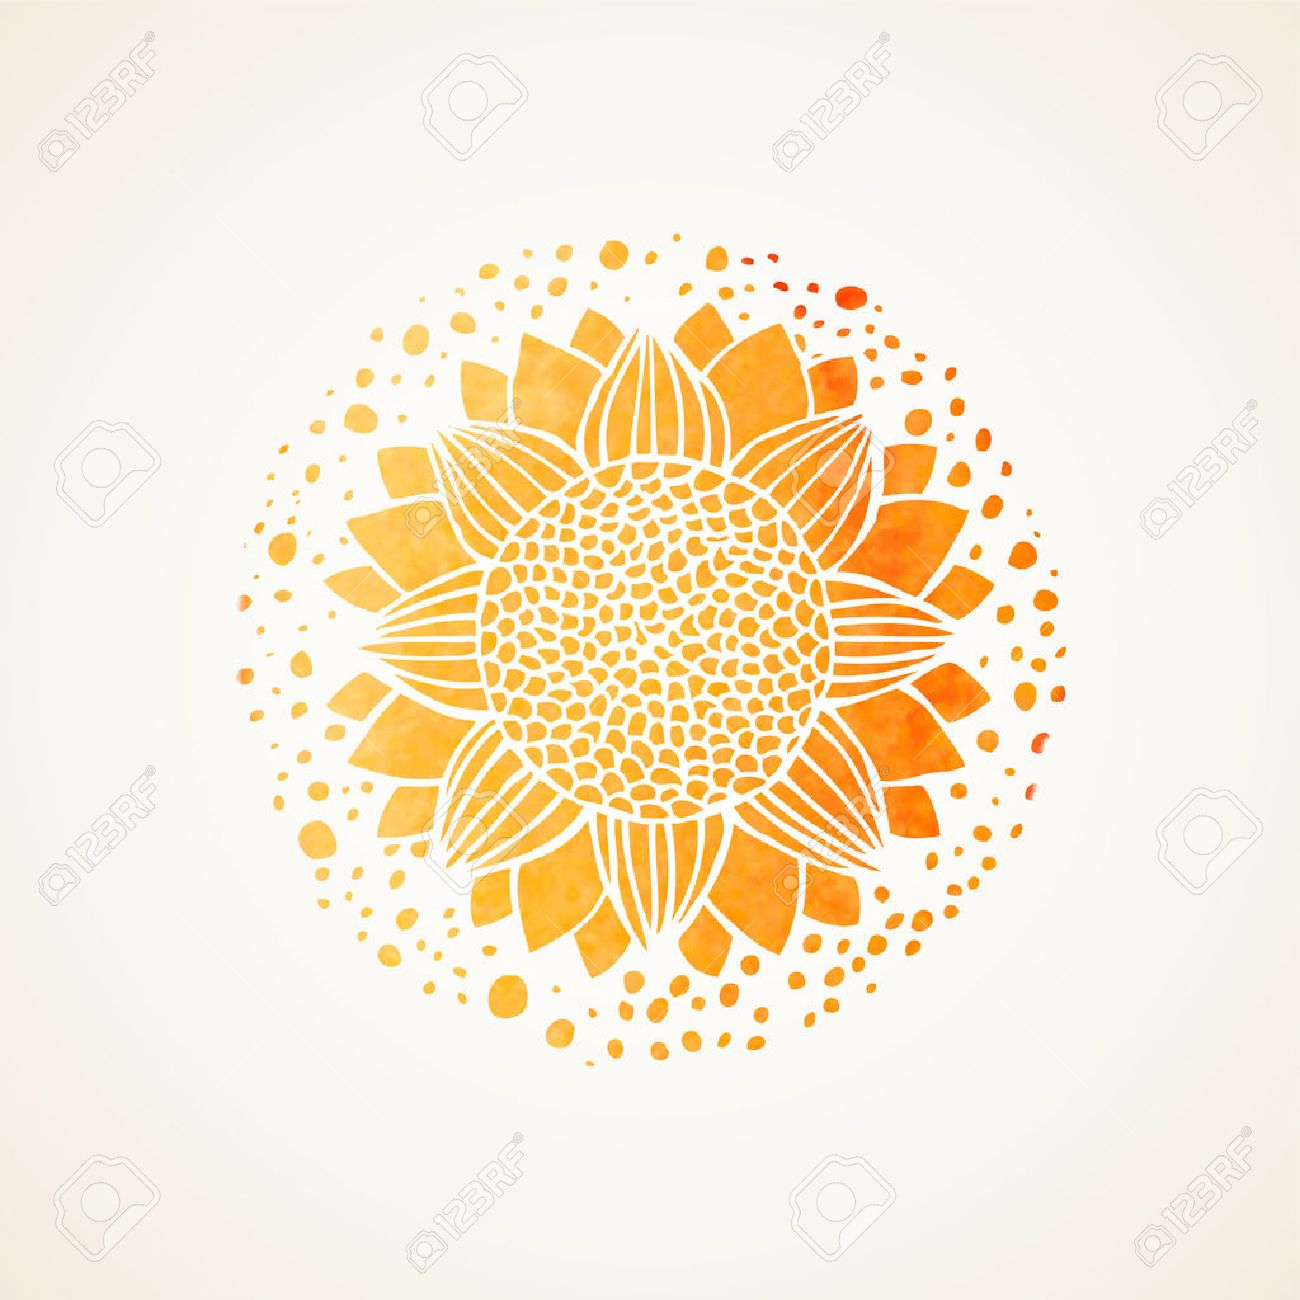 Watercolor sunny mandala. Stylized sunflower. Element for design. Lace yellow pattern on white background. Vector illustration - 41985839